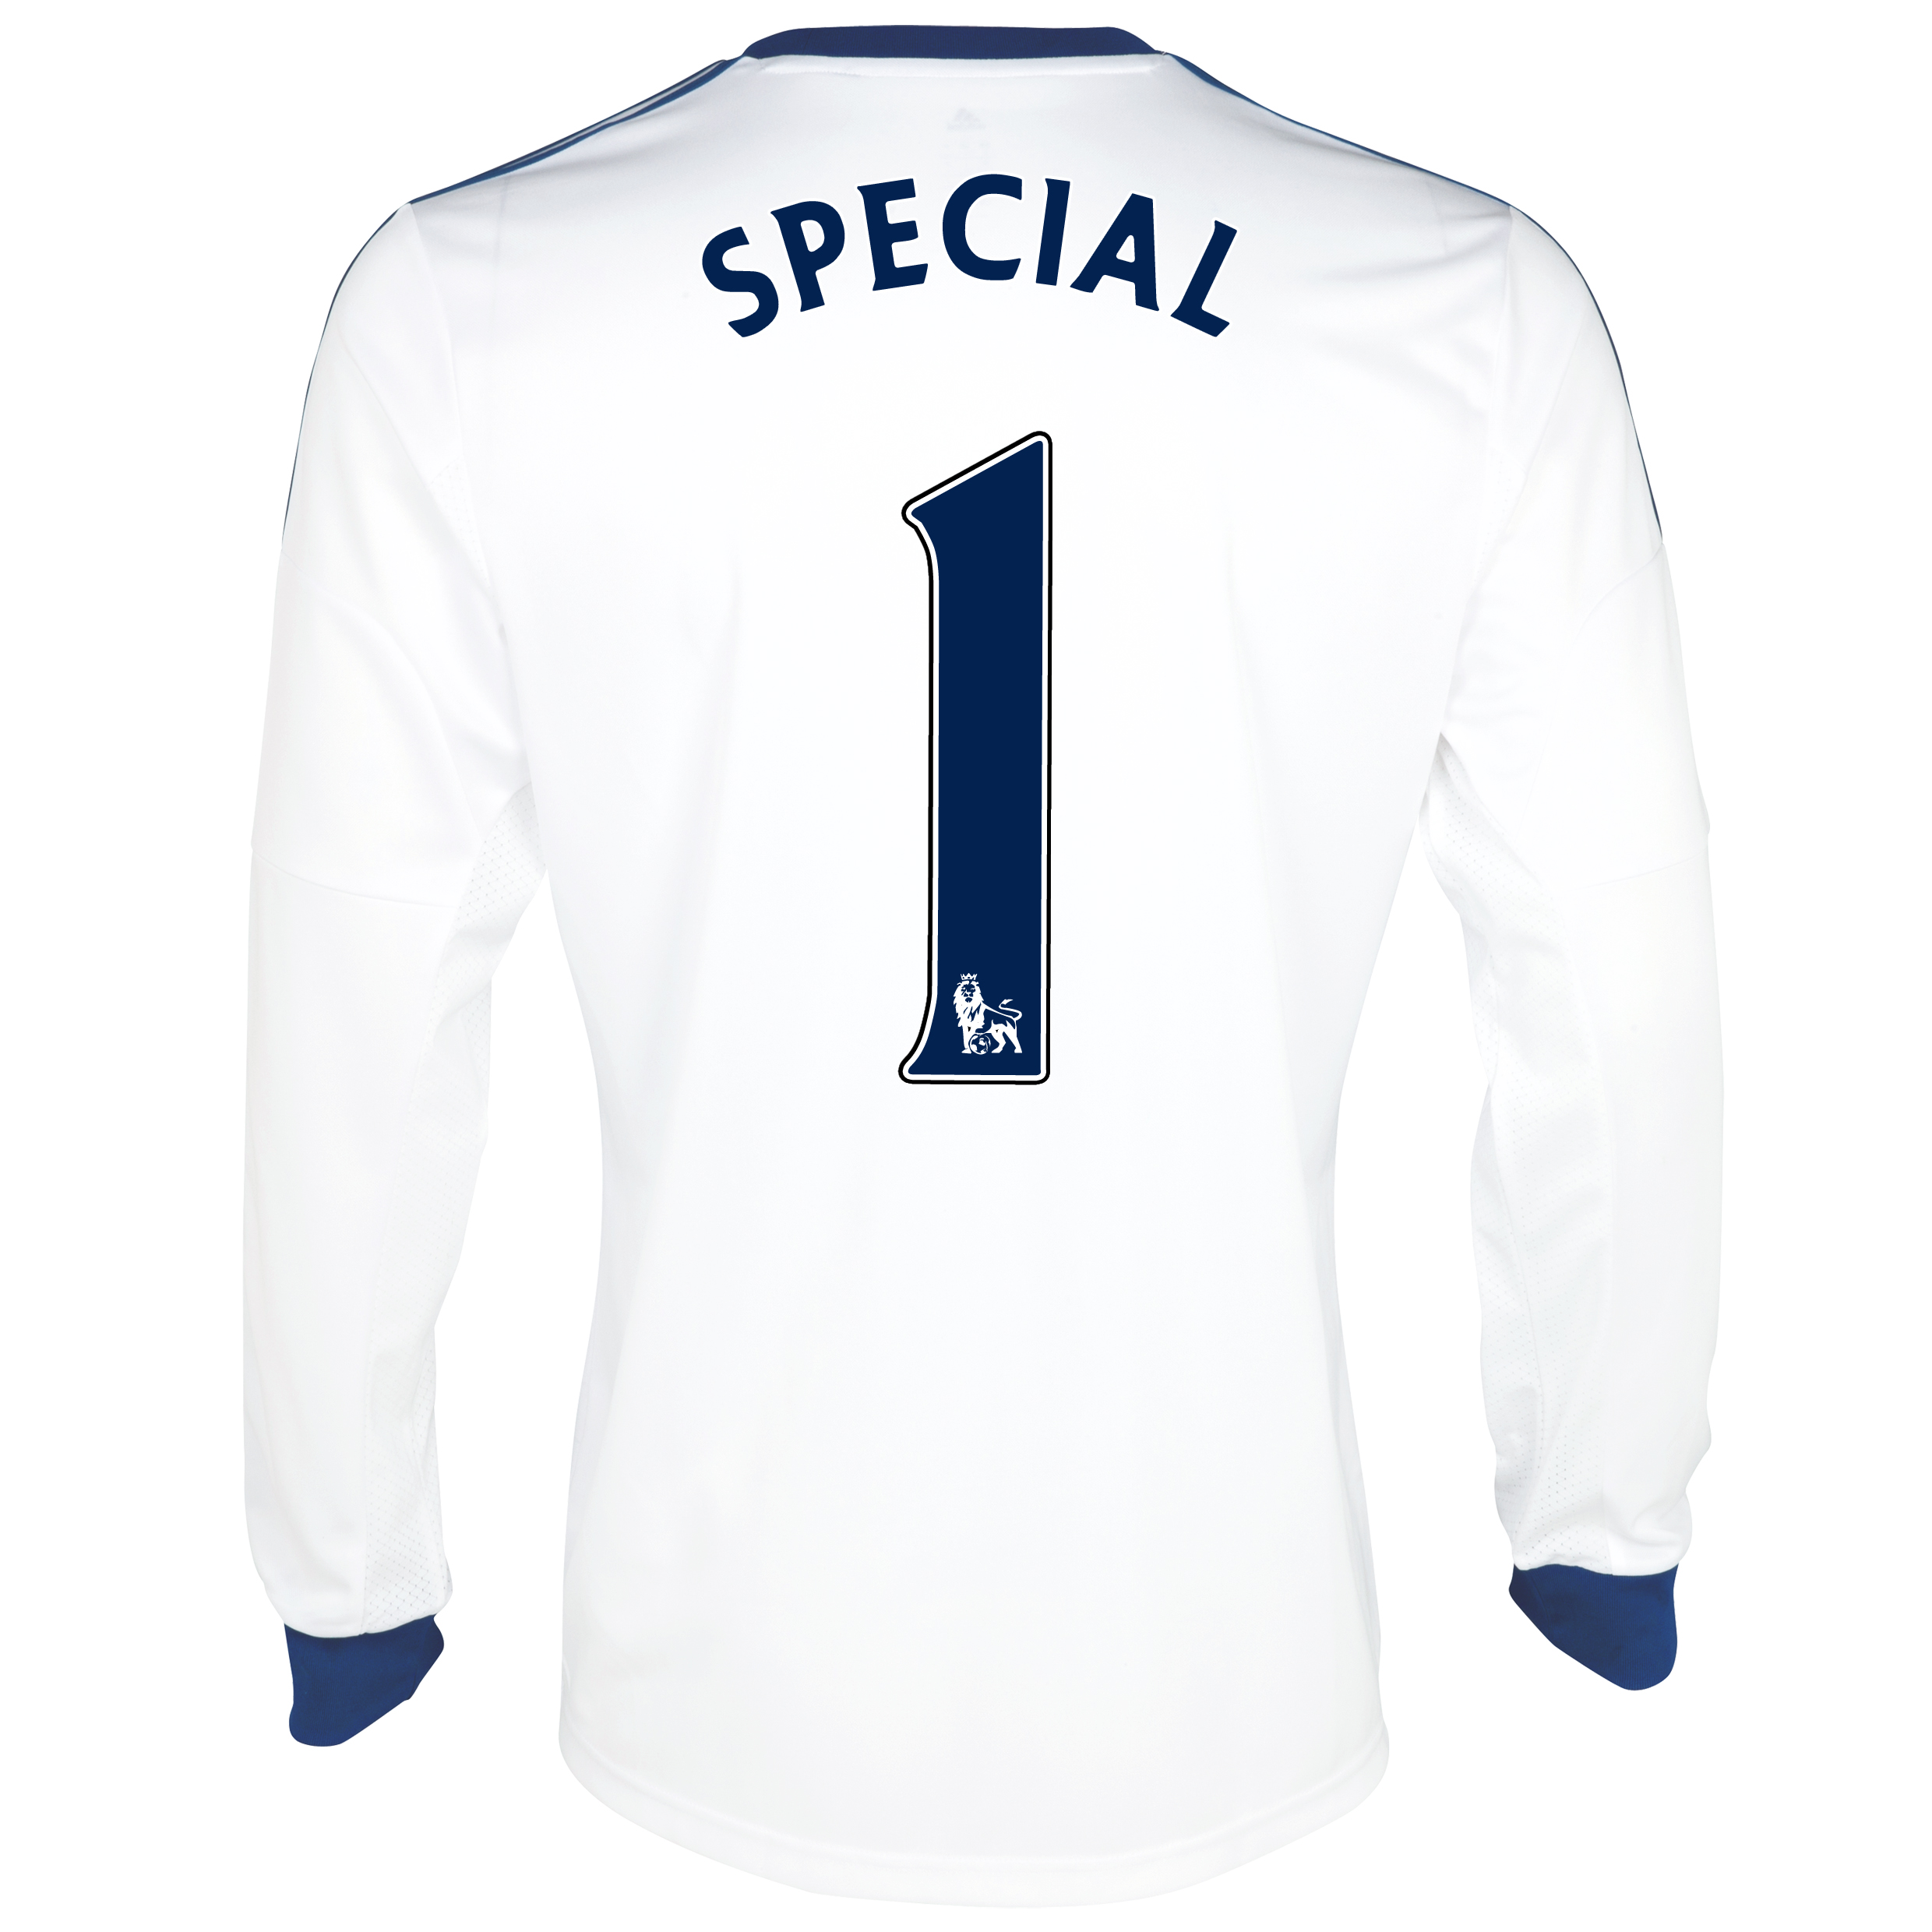 Chelsea Away Shirt 2013/14 - Long Sleeved - Kids with Special 1 printing